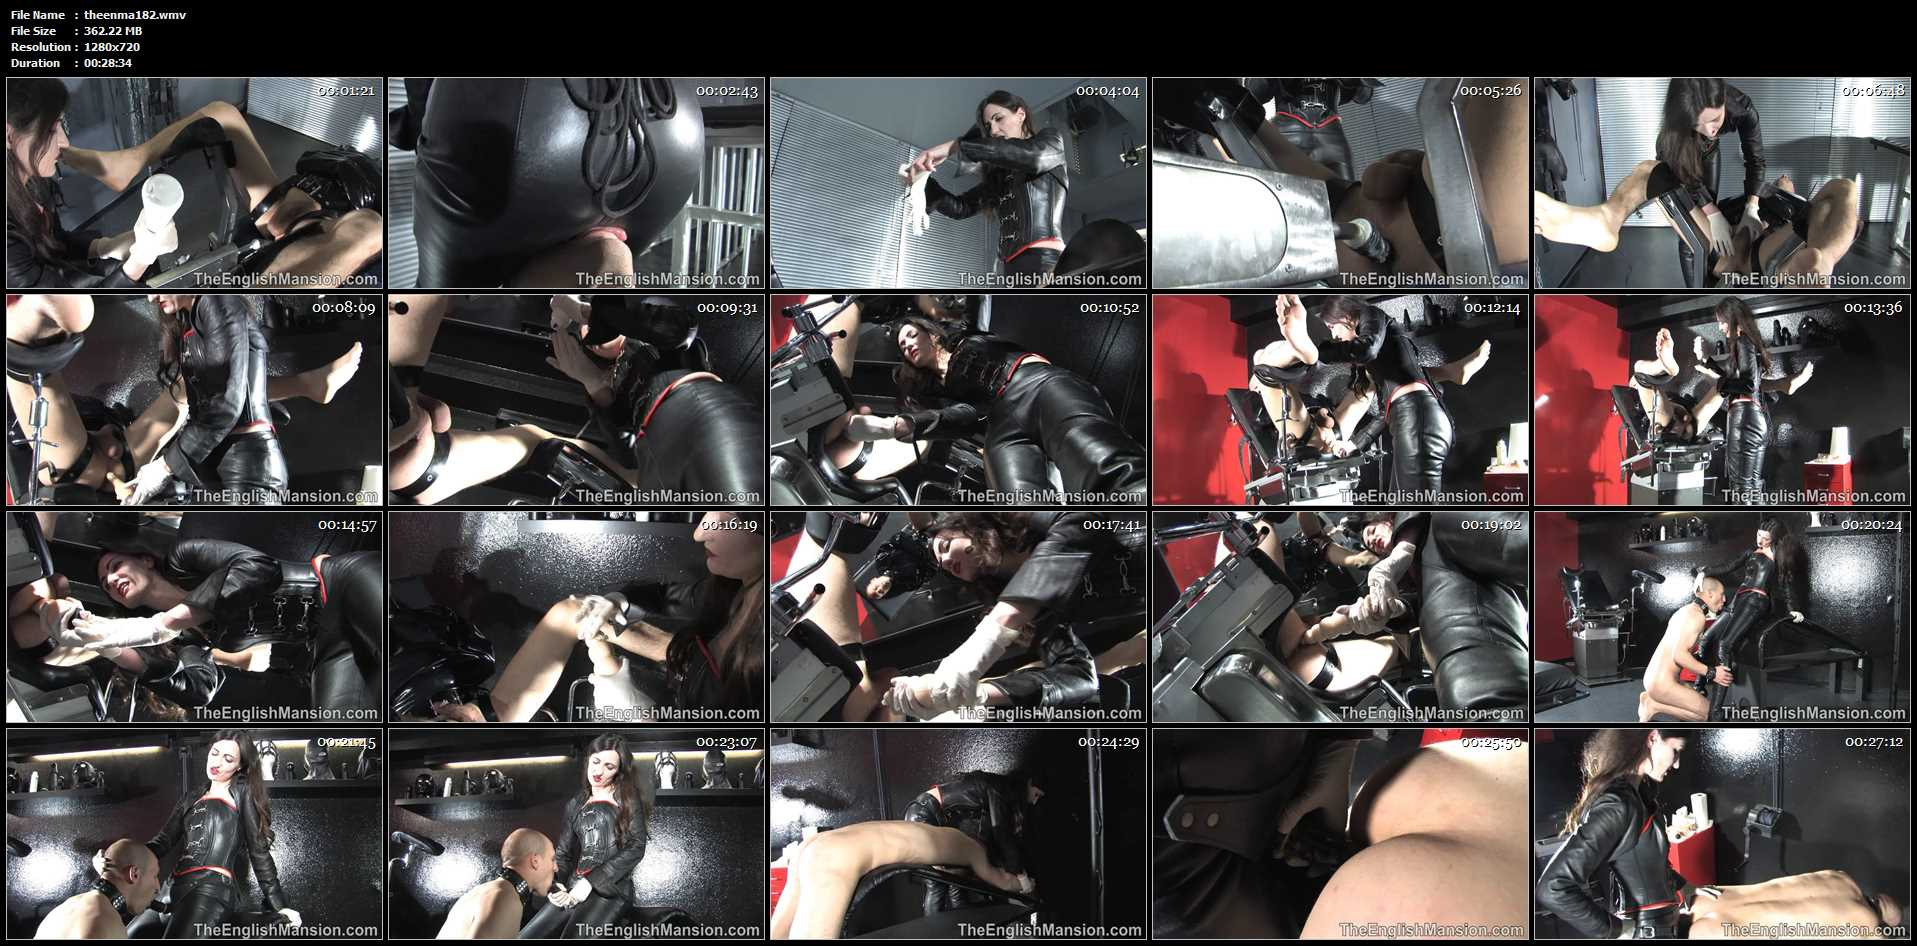 Lady Victoria In Scene: Anal Stretching - THEENGLISHMANSION - HD/720p/WMV